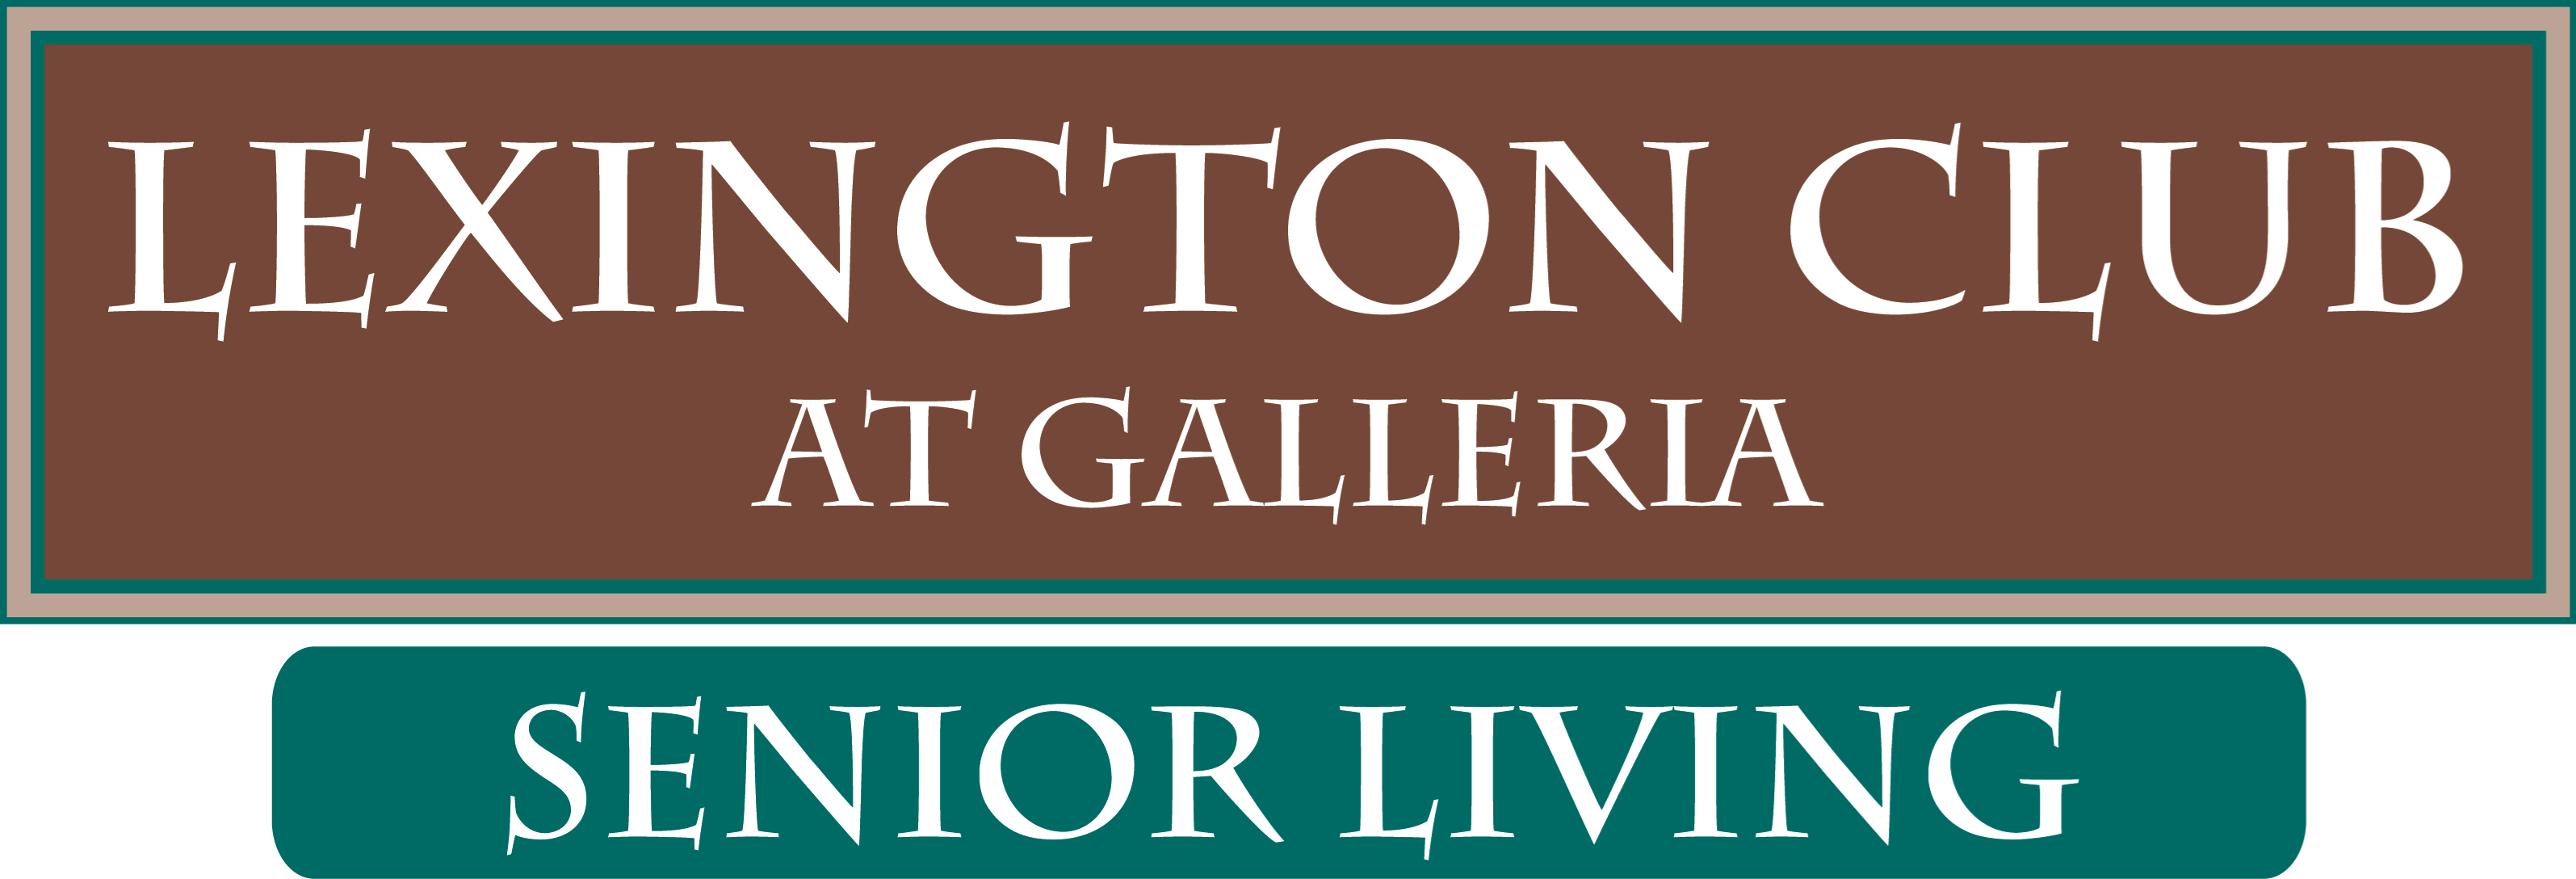 Lexington Club at Galleria Apartments for rent in Poughkeepsie, NY. Make this community your new home or visit other ConcordRENTS communities at ConcordRENTS.com. Logo